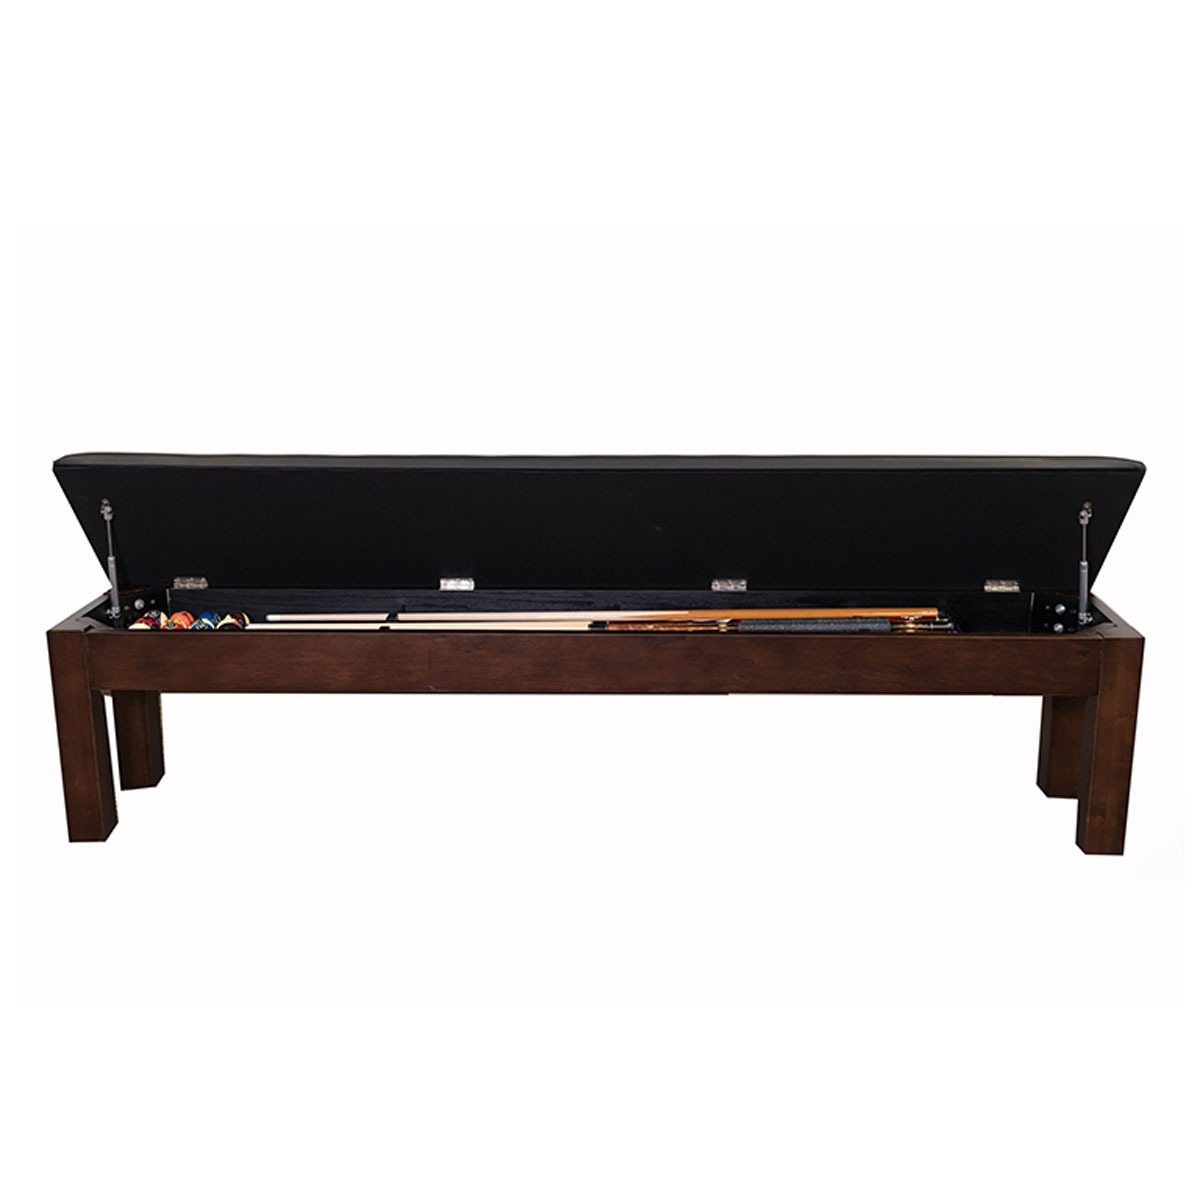 Hamilton Bench Openq - Adrian Pool Table